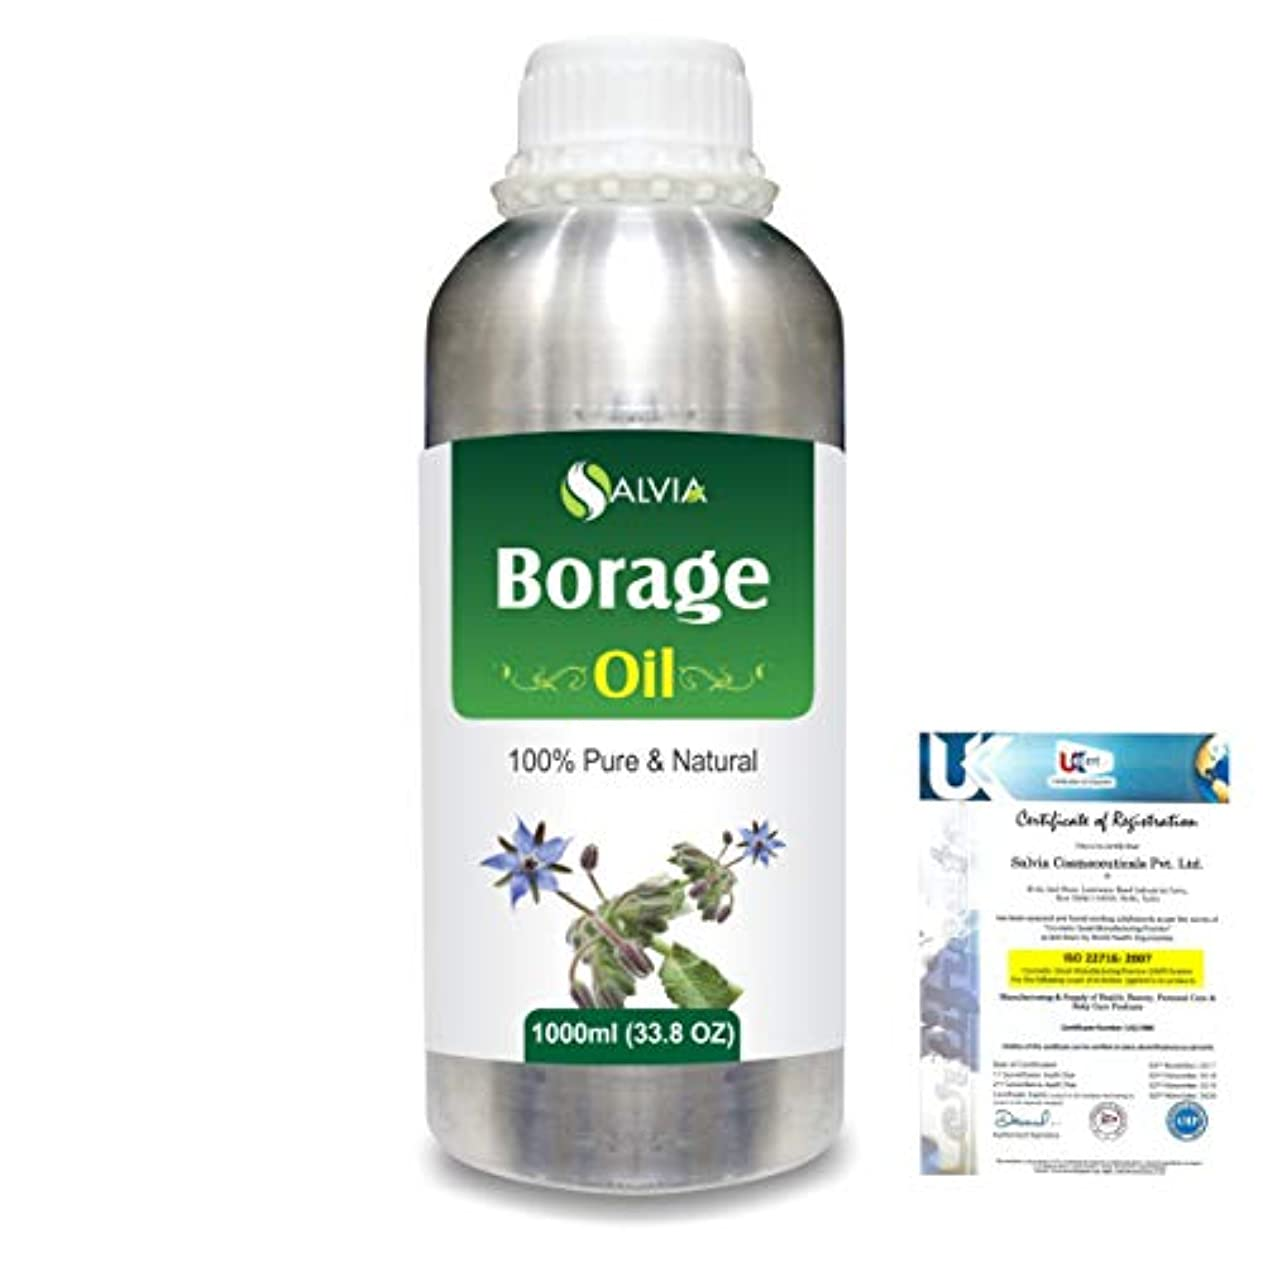 理想的には謝罪するスロットBorage (Borago officinalis) Natural Pure Undiluted Uncut Carrier Oil 1000ml/33.8 fl.oz.